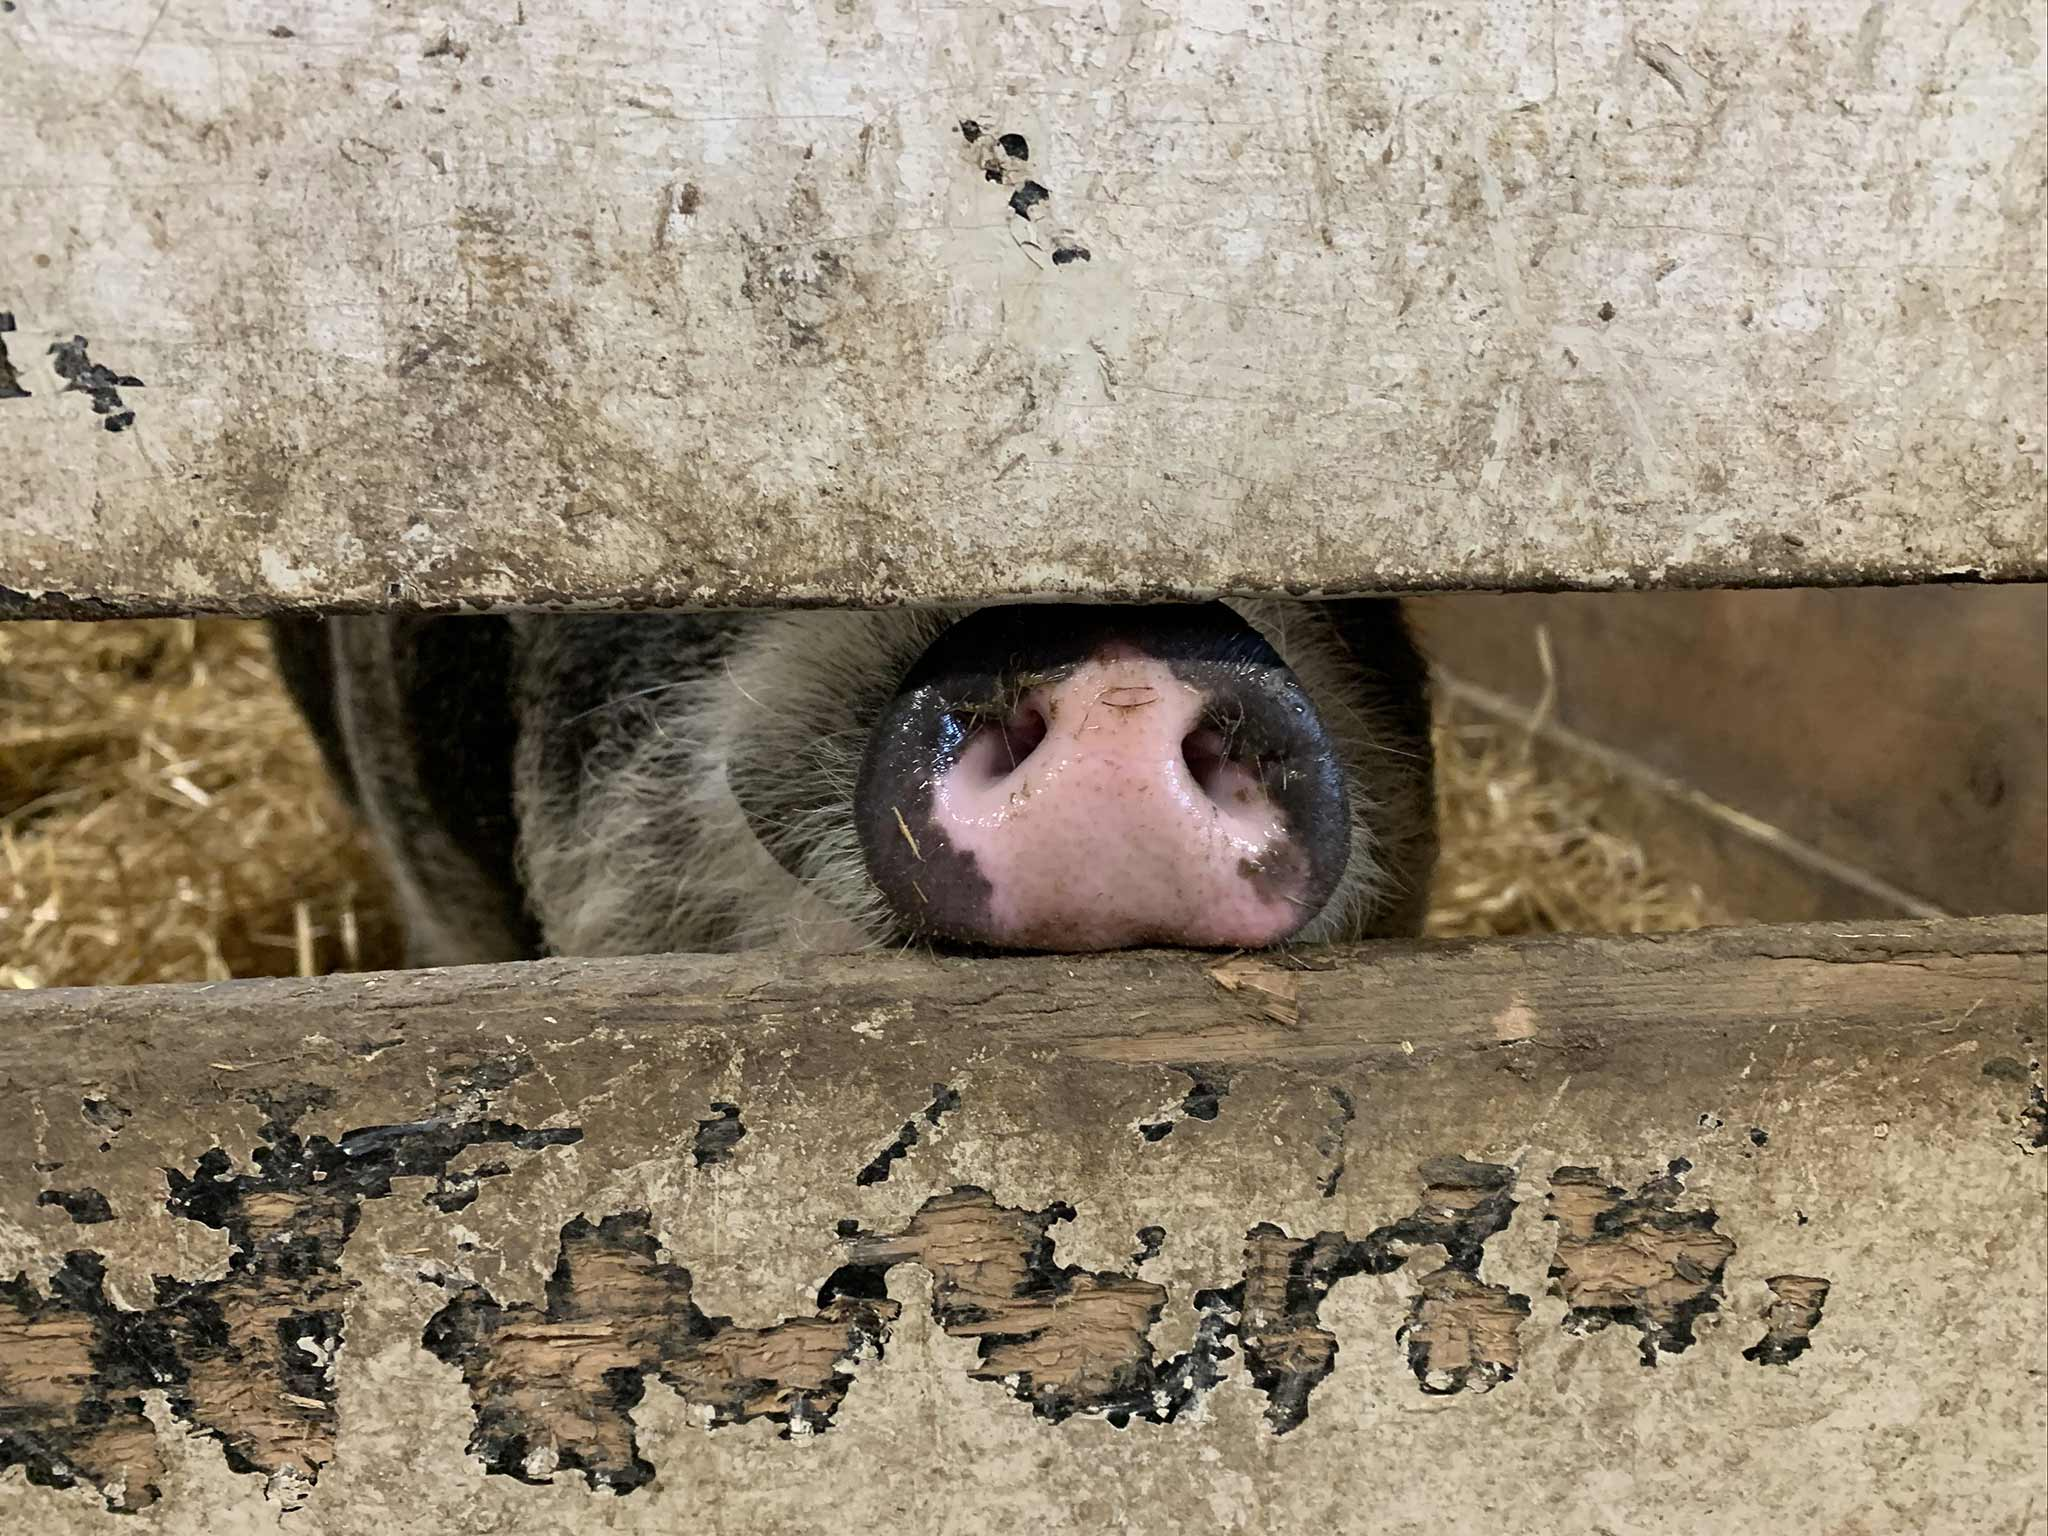 Pig snout peeking out of a stall